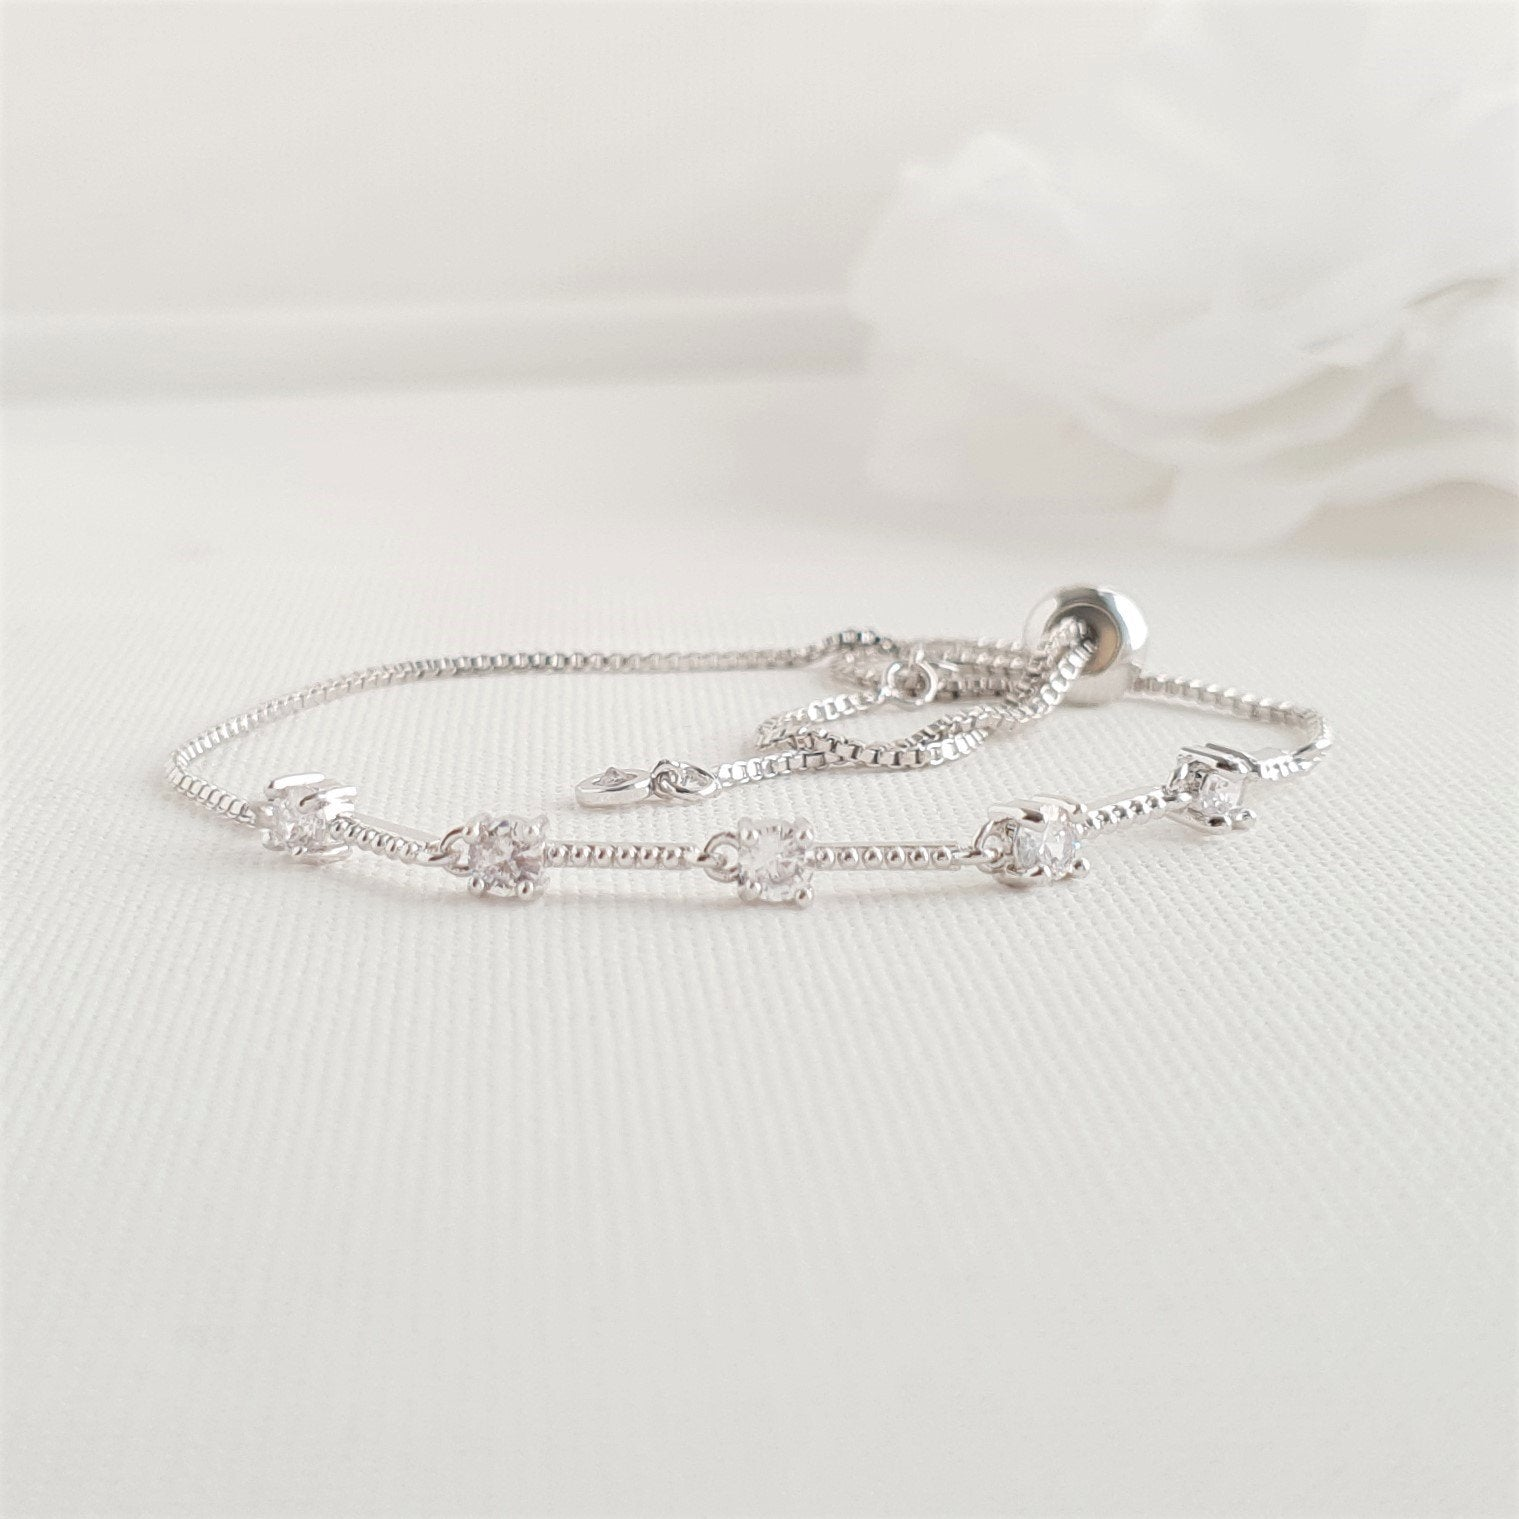 Delicate Silver Wedding Bracelets for Brides & Bridesmaids- Ginger